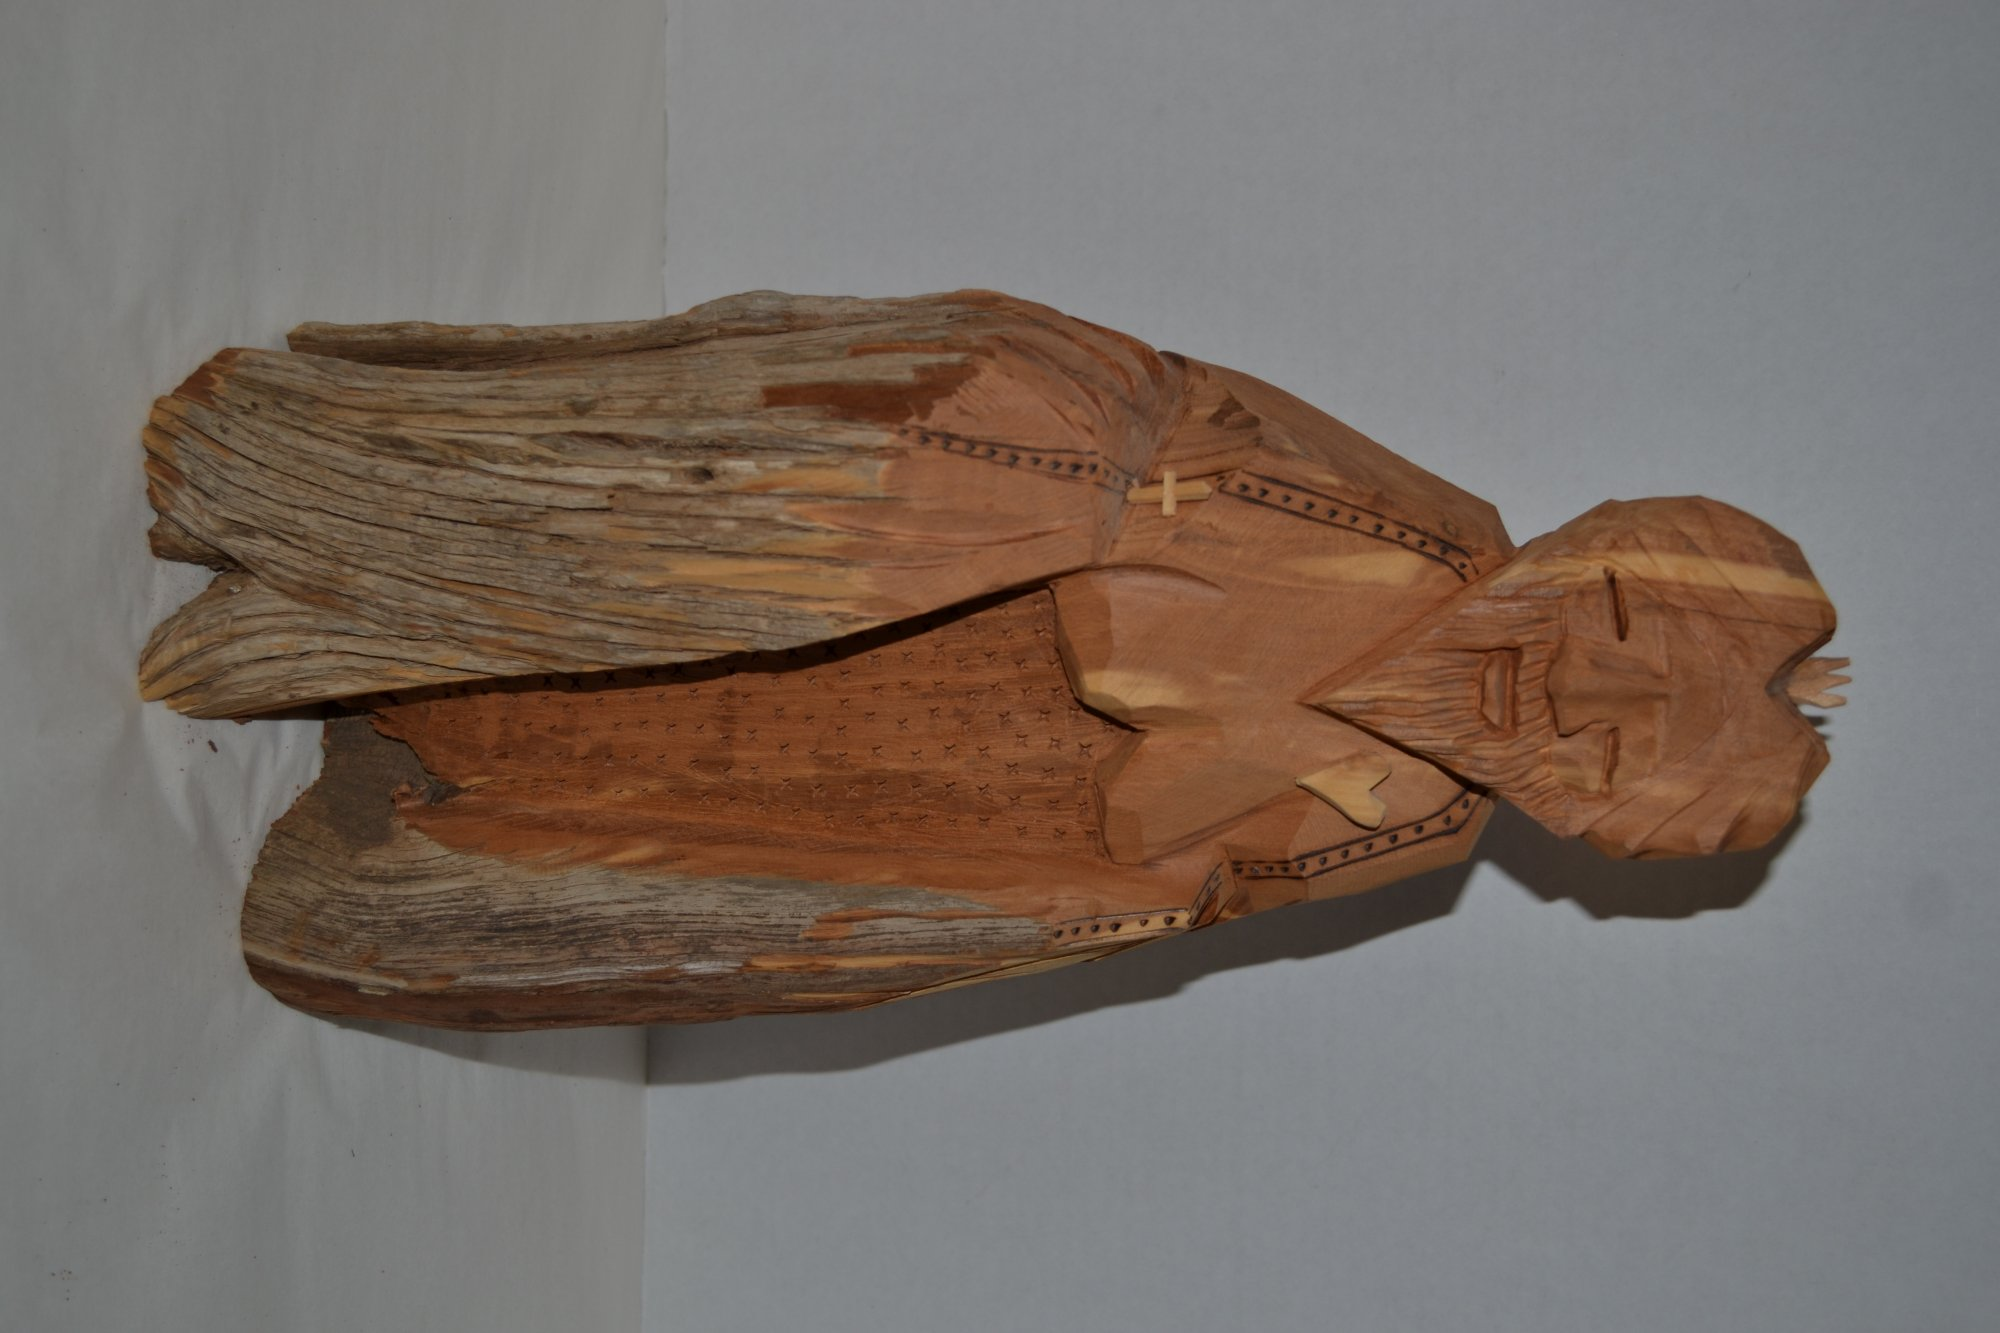 20th Century wooden religious carving statue from Santa Fe New Mexico